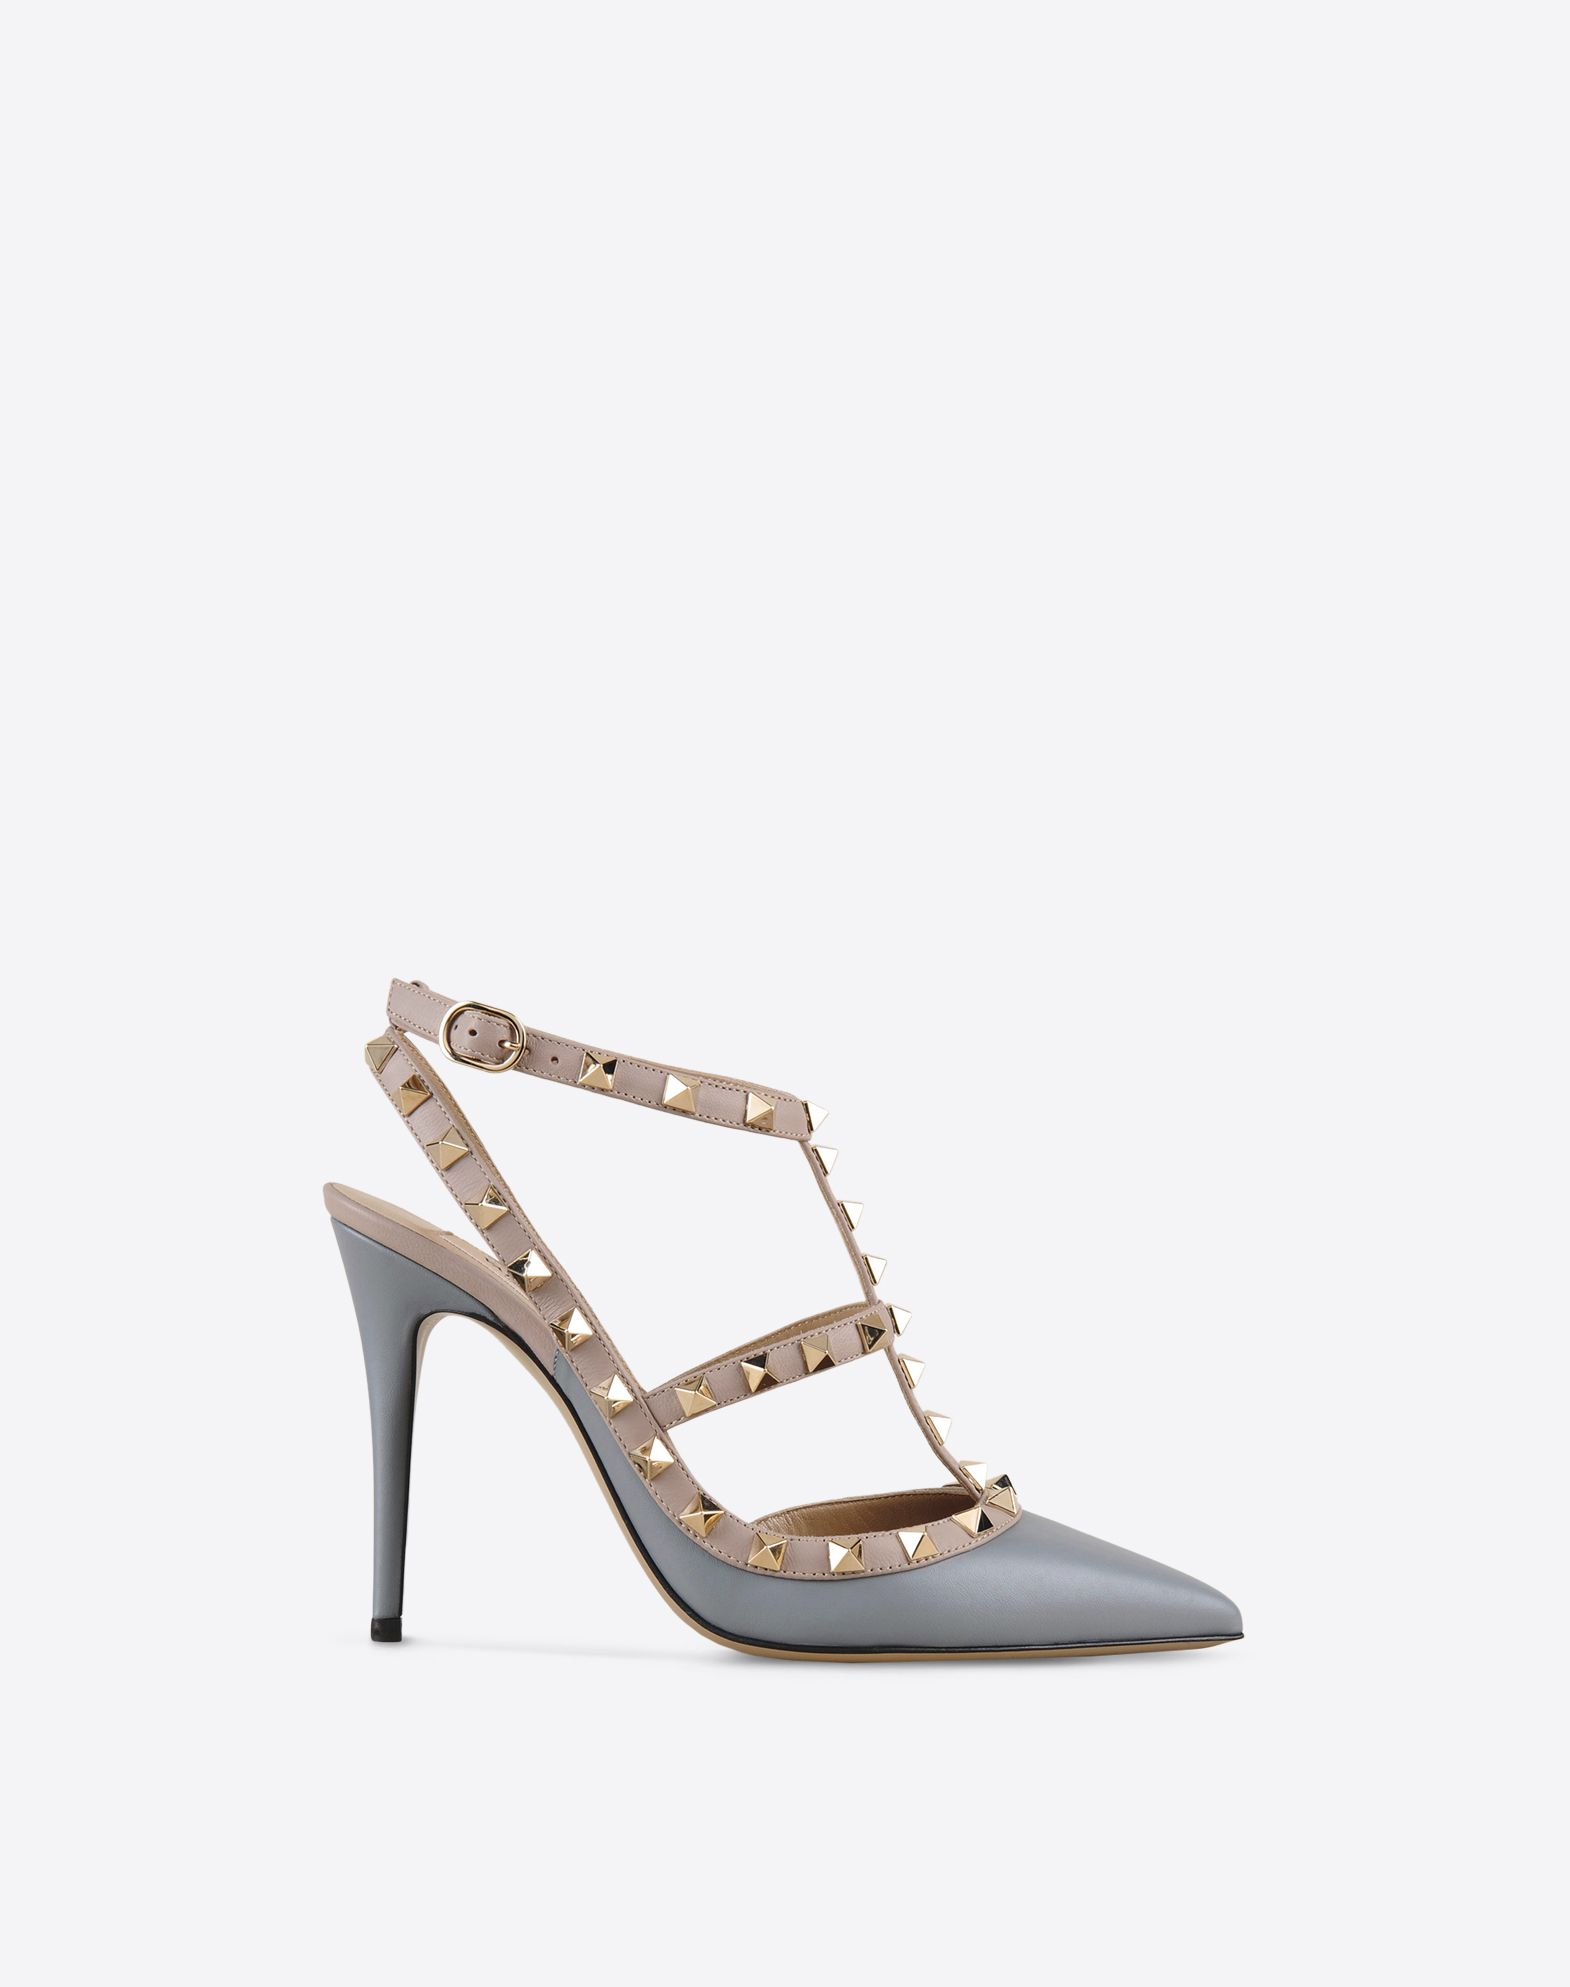 shoes valentino sandals stud en f rockstud rock com gb harrods heeled